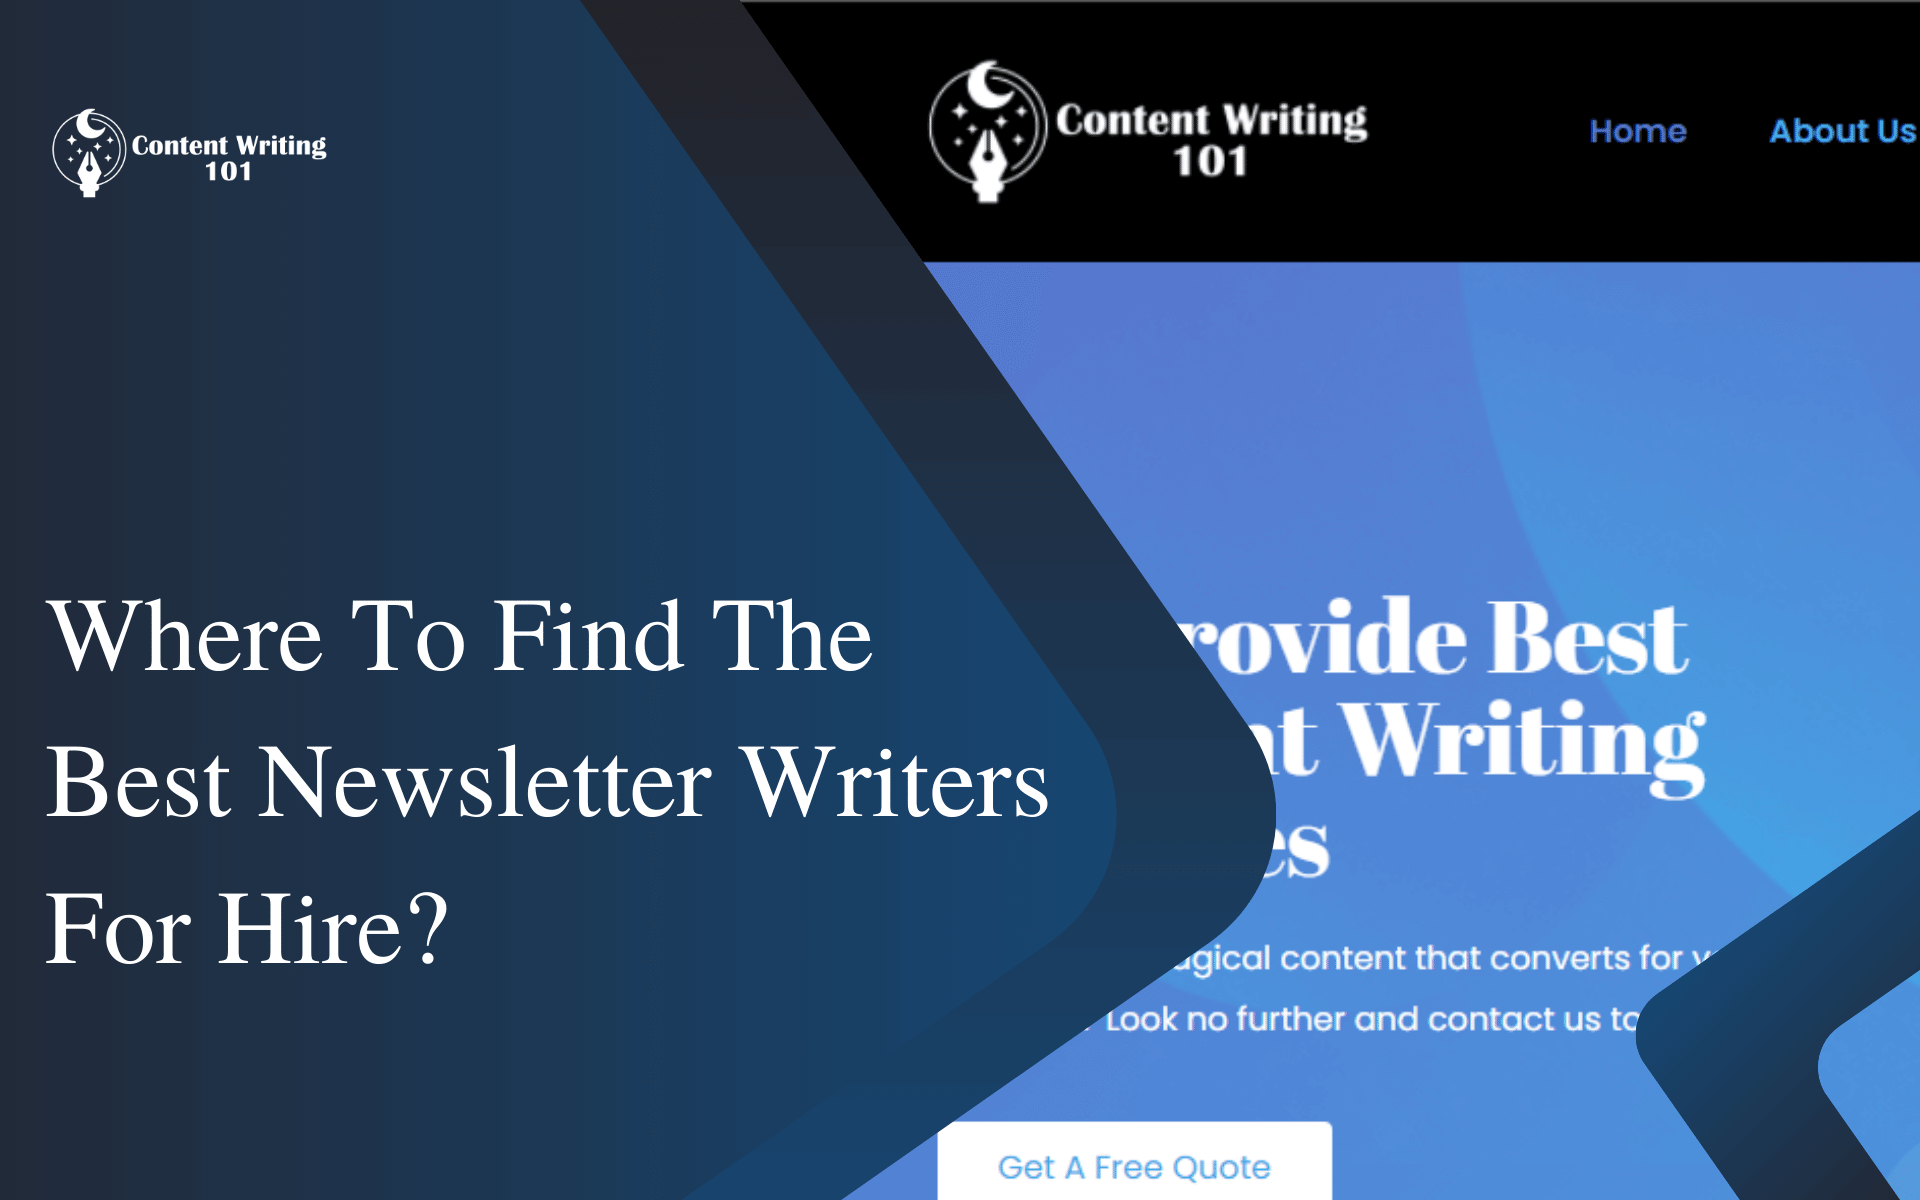 Where To Find The Best Newsletter Writers For Hire?